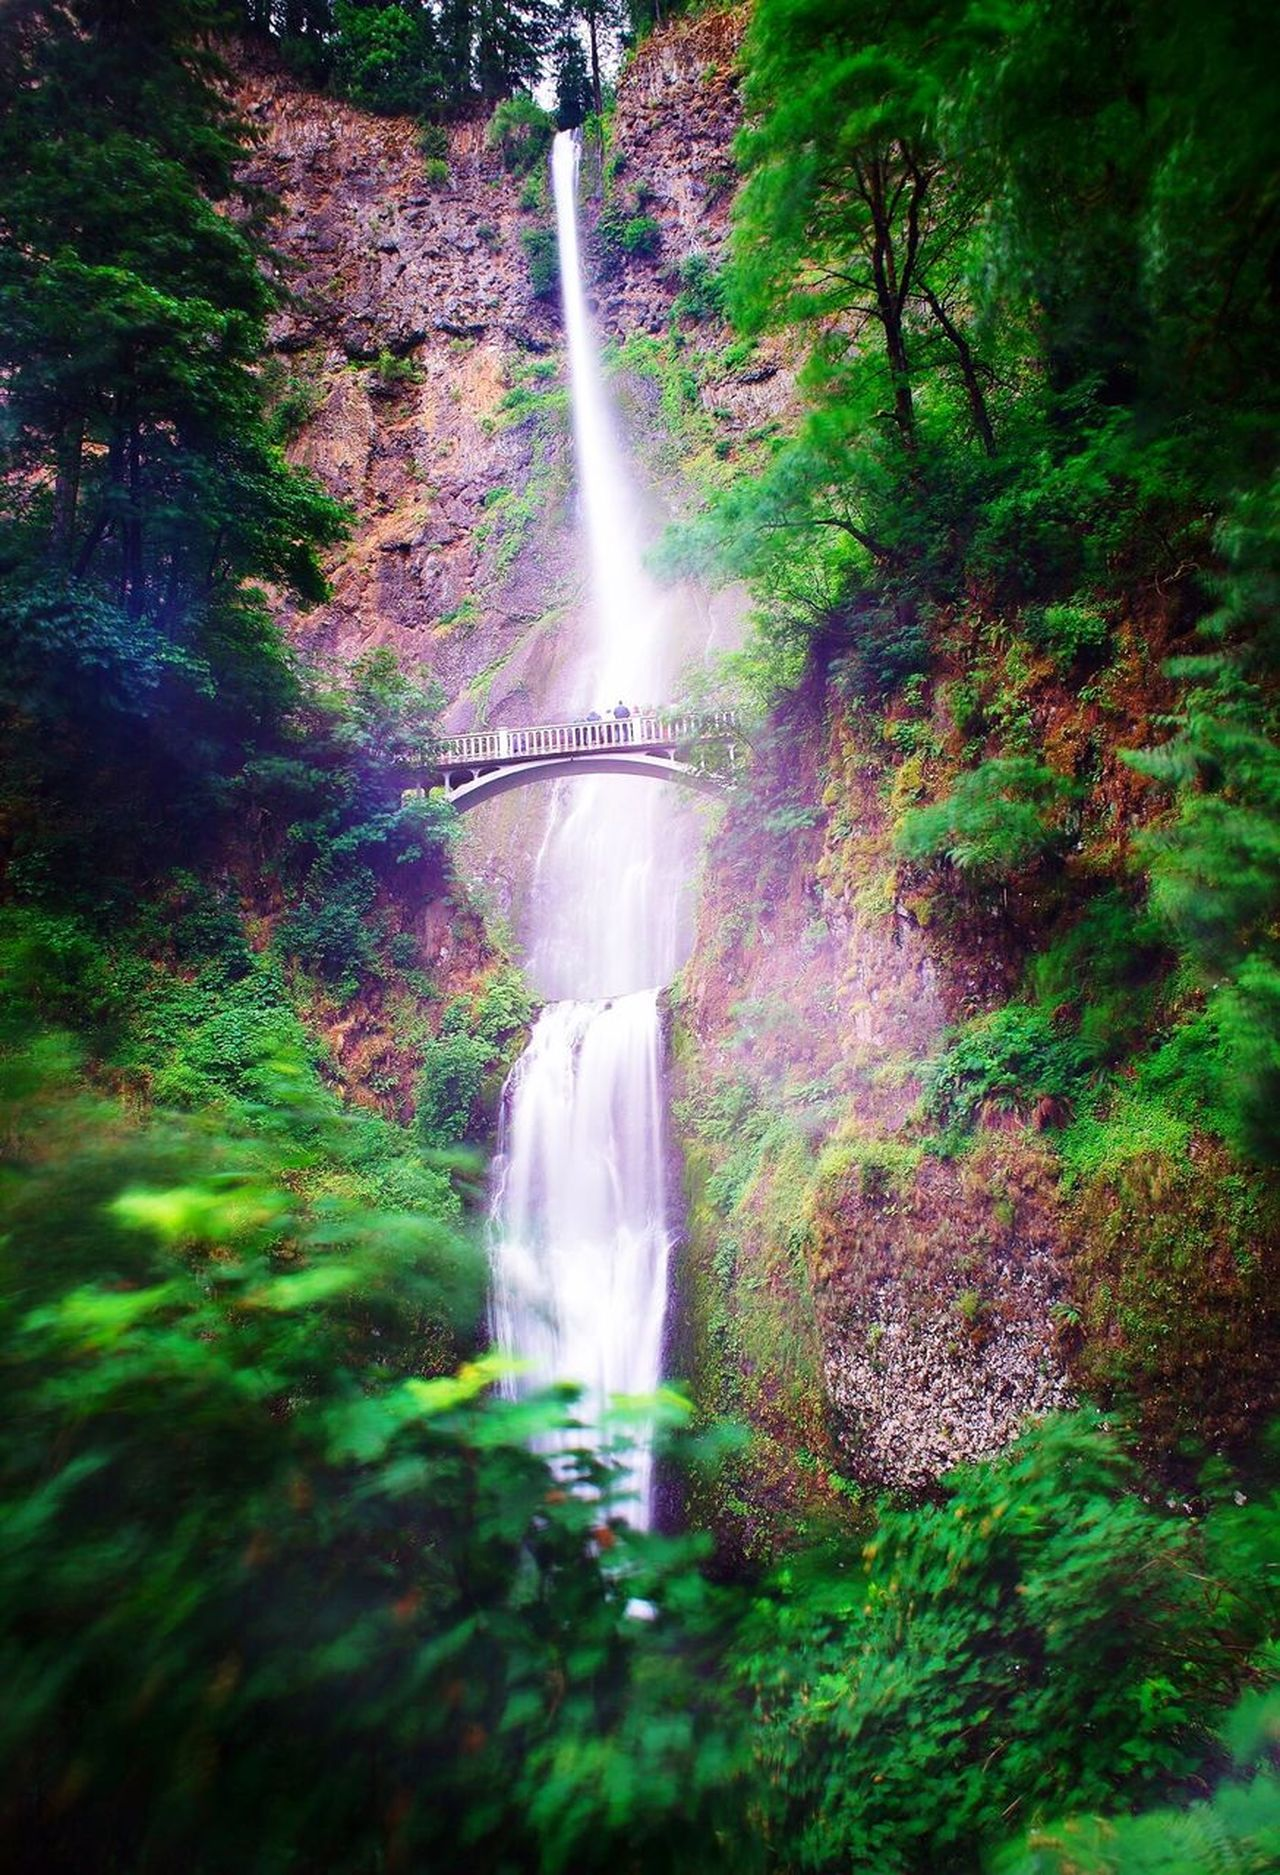 Multnomah Falls  Waterfall Nature Beauty In Nature Green Color Lush Foliage Growth Scenics Forest Rear View Outdoors Day Real People Grass One Person Tree Freshness